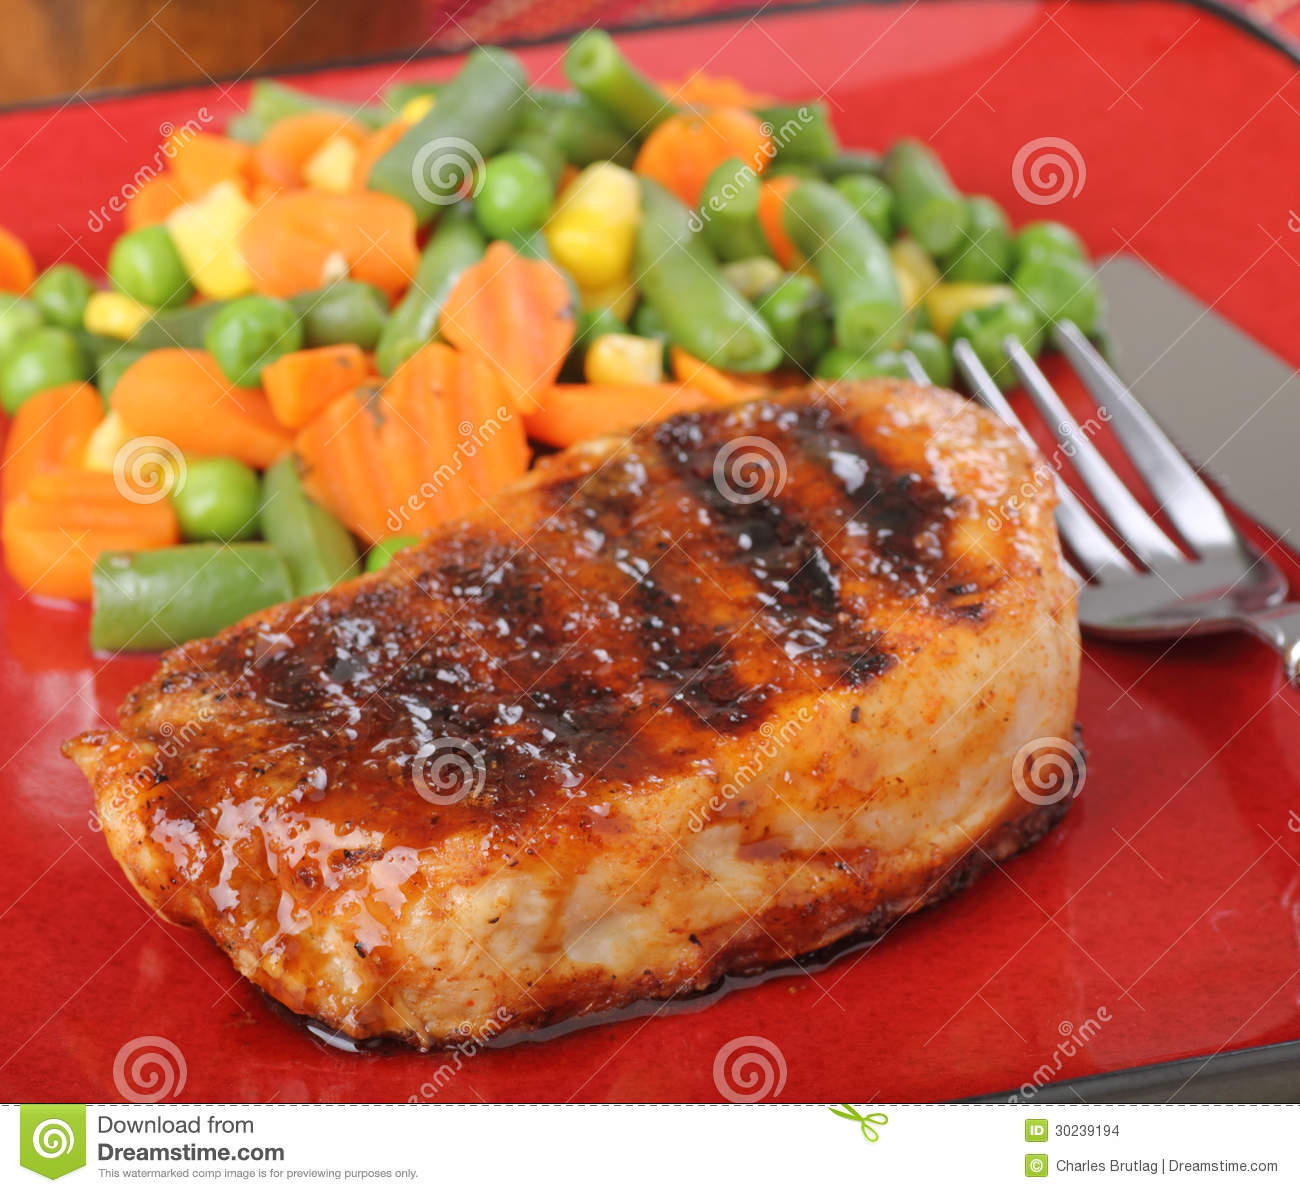 Pork Tenderloin Meal: Pork Tenderloin Stock Photo. Image Of Meat, Pork, Dinner